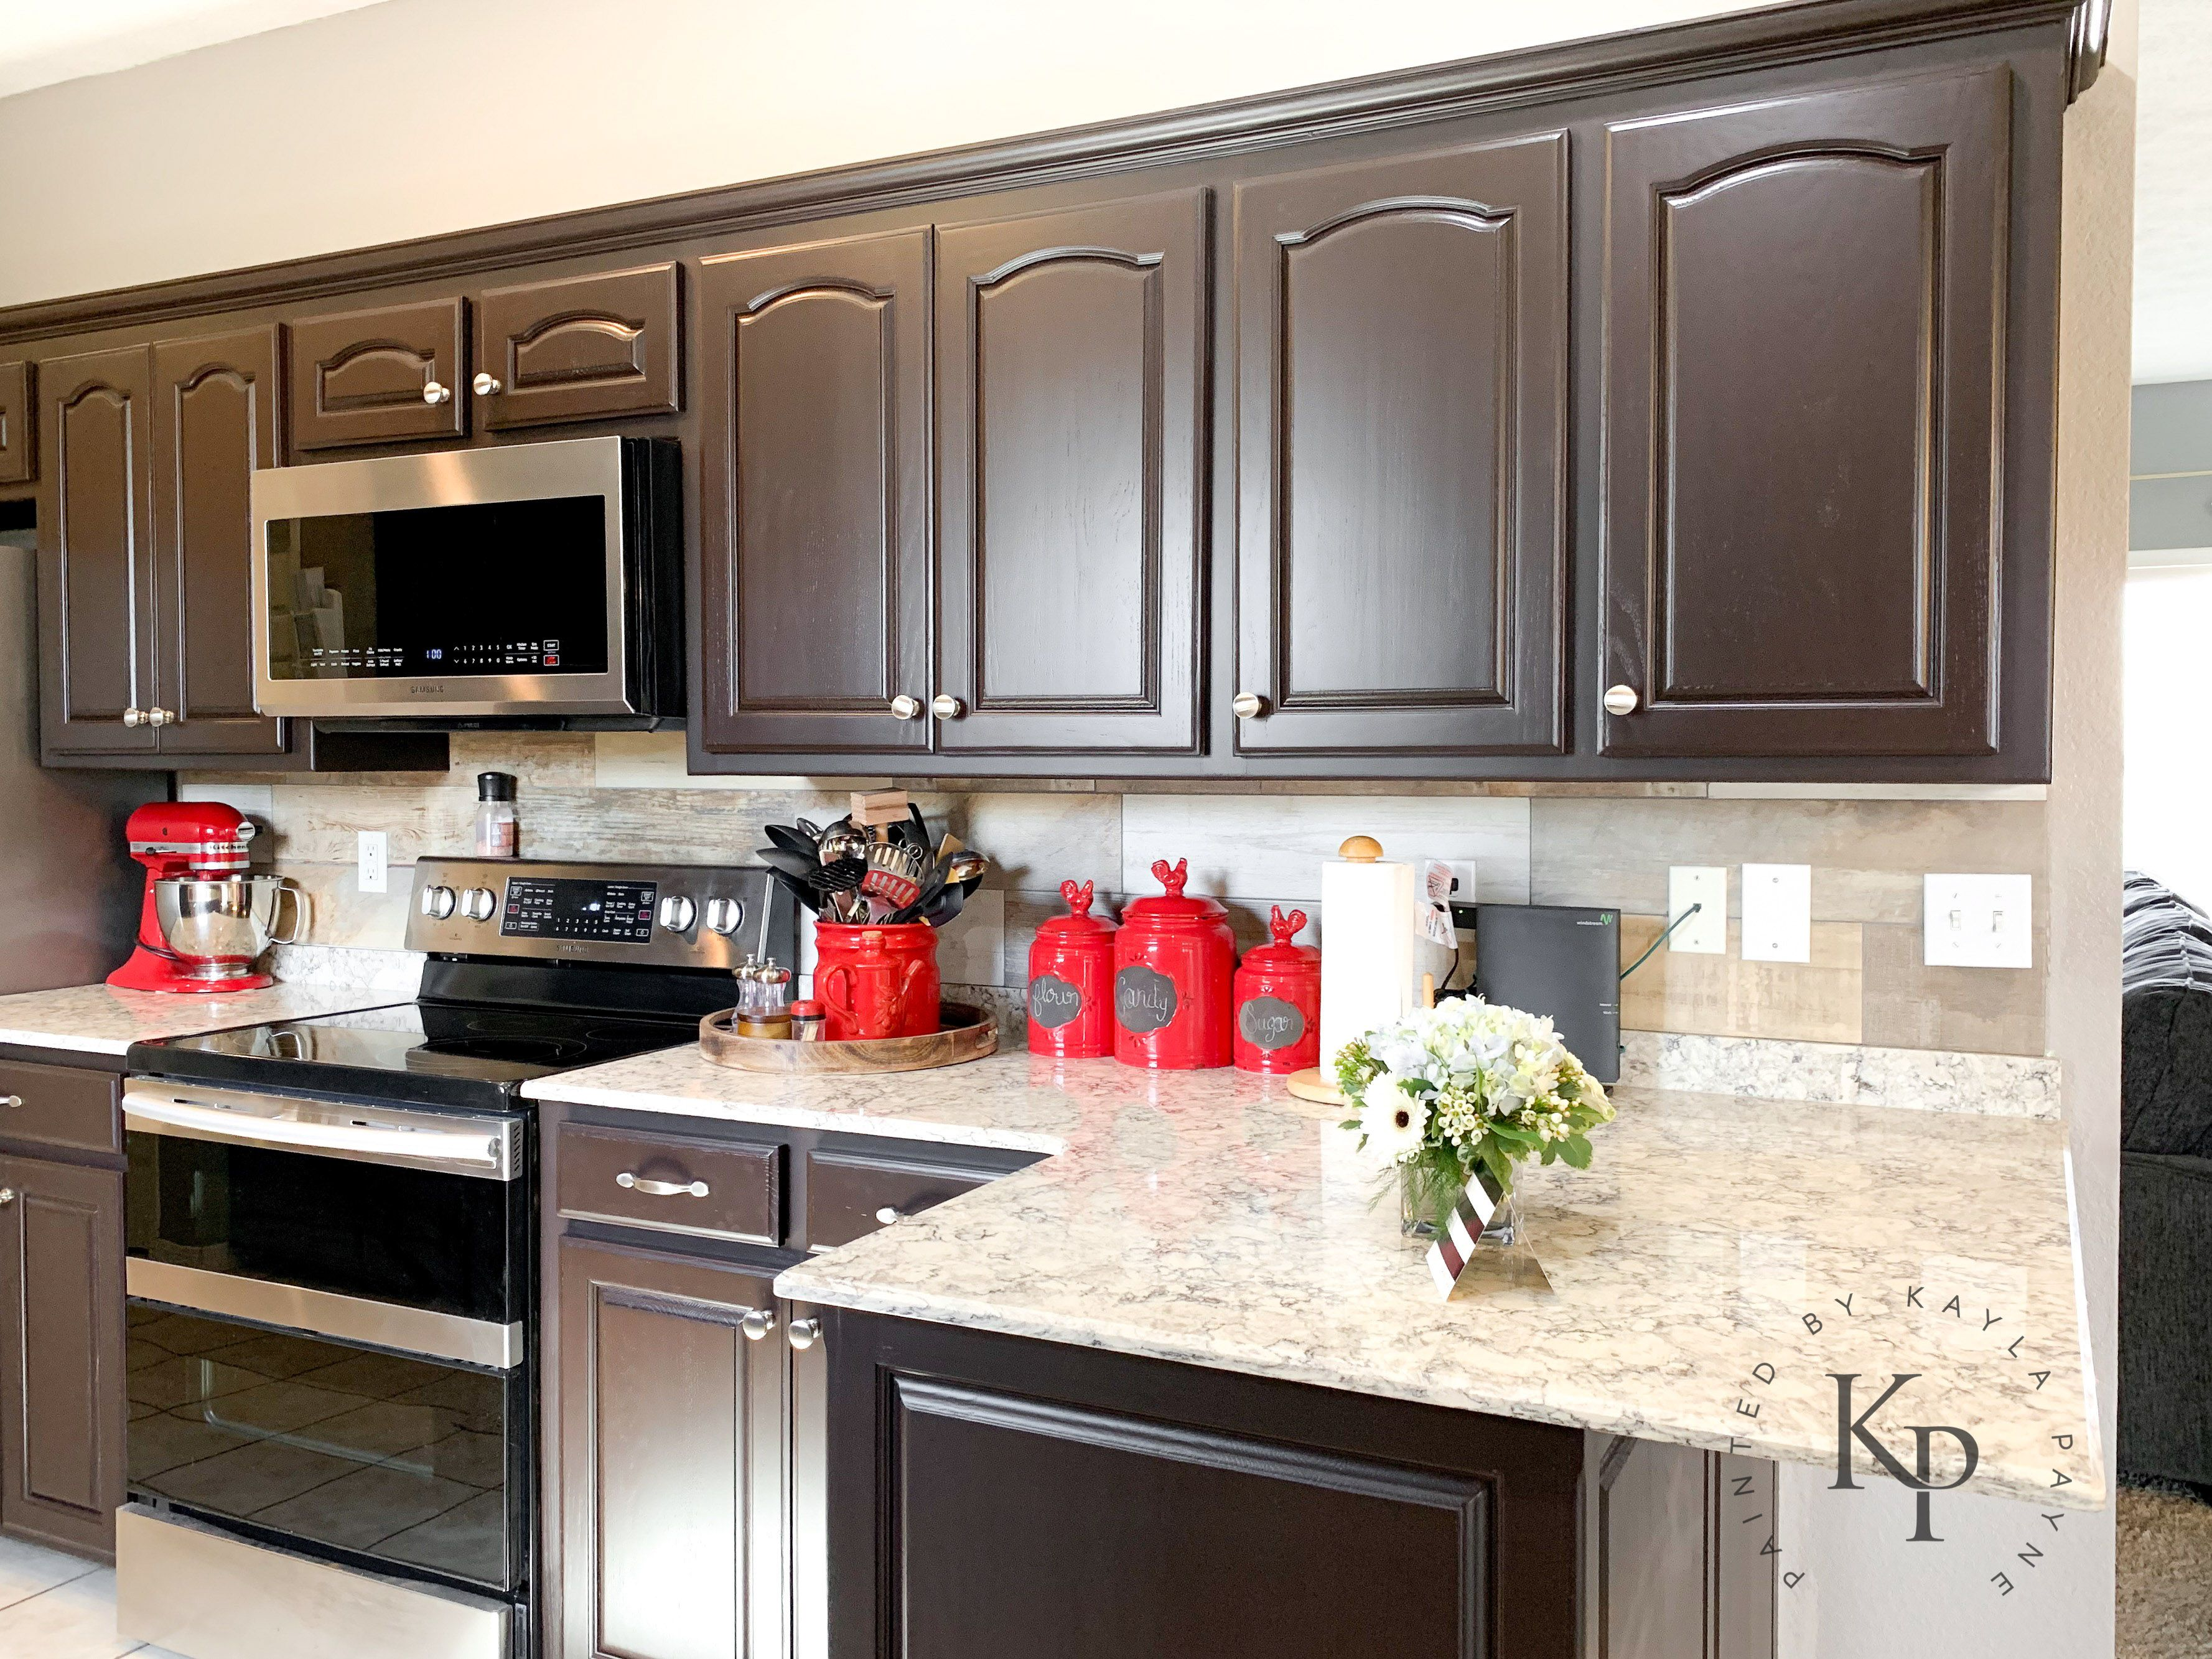 it s true not everyone wants white kitchen cabinets cabinetry inspiration new kitchen on kitchen cabinets not white id=27619